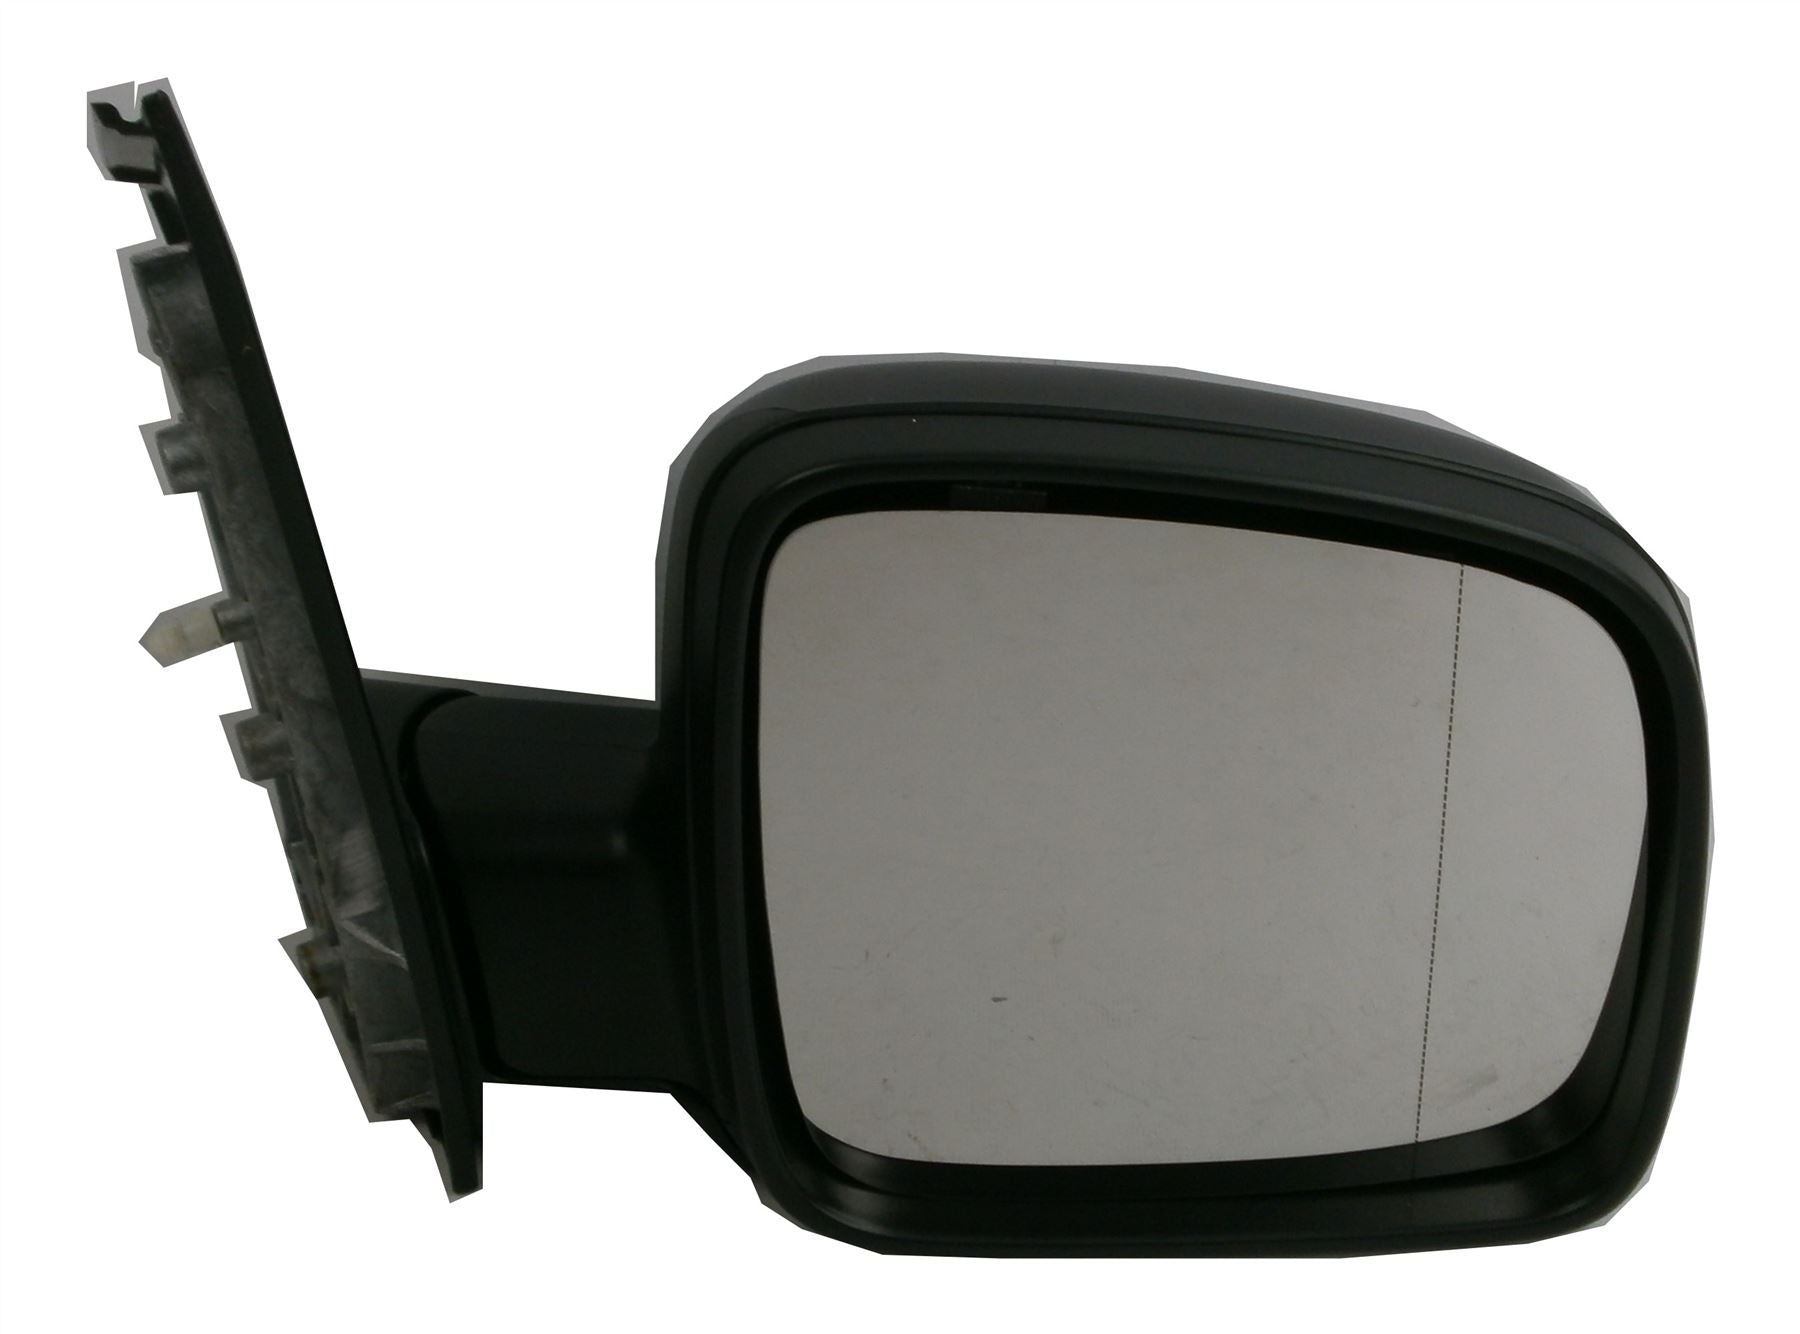 VW Caddy Mk4 6/2015+ Manual Wing Mirror Black Excl. Aerial Drivers Side O/S